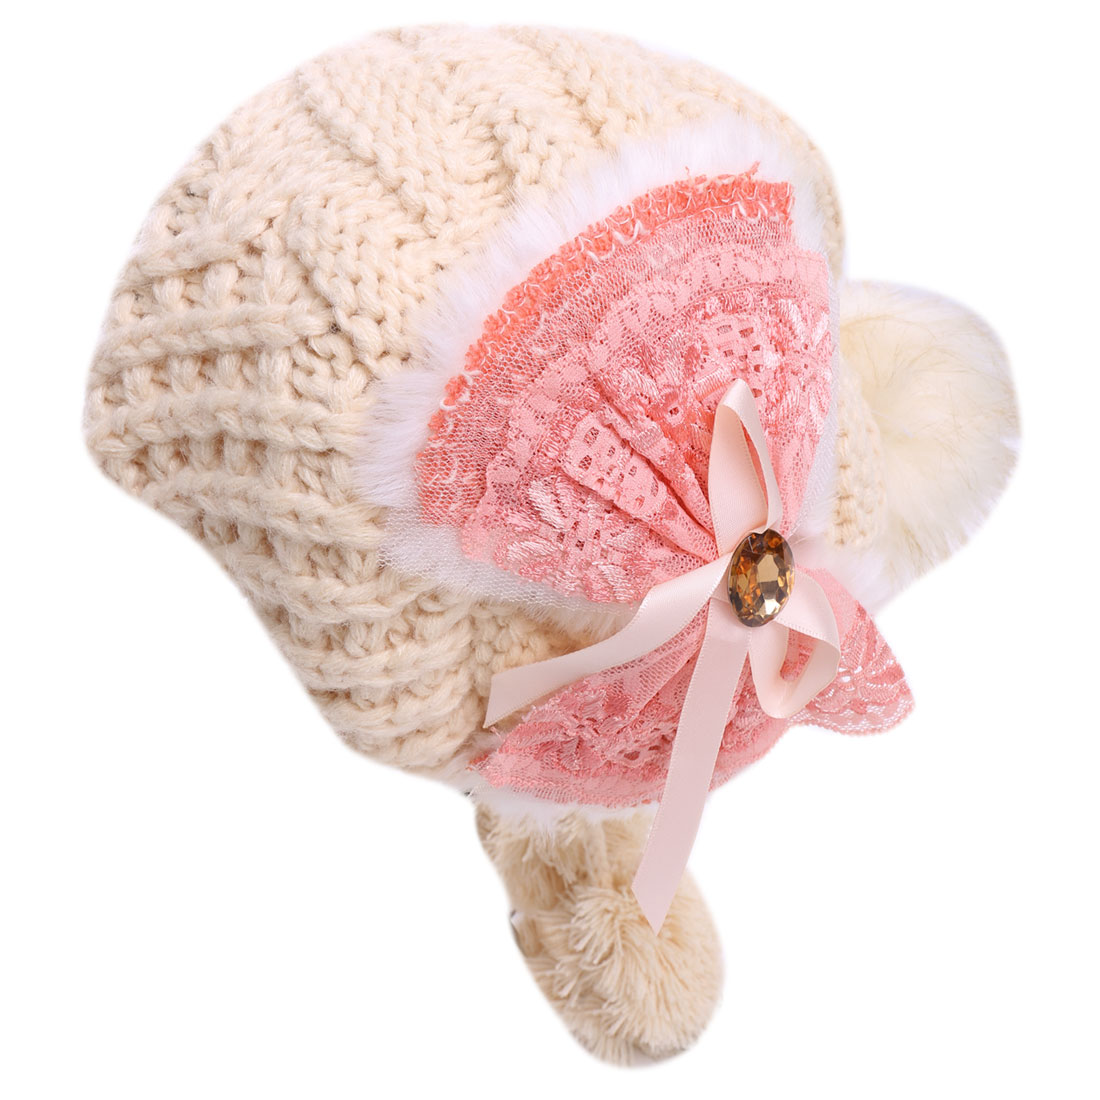 Lady Faux Fut Pom-Pom Top Beige Color Knitted Beanie Hat